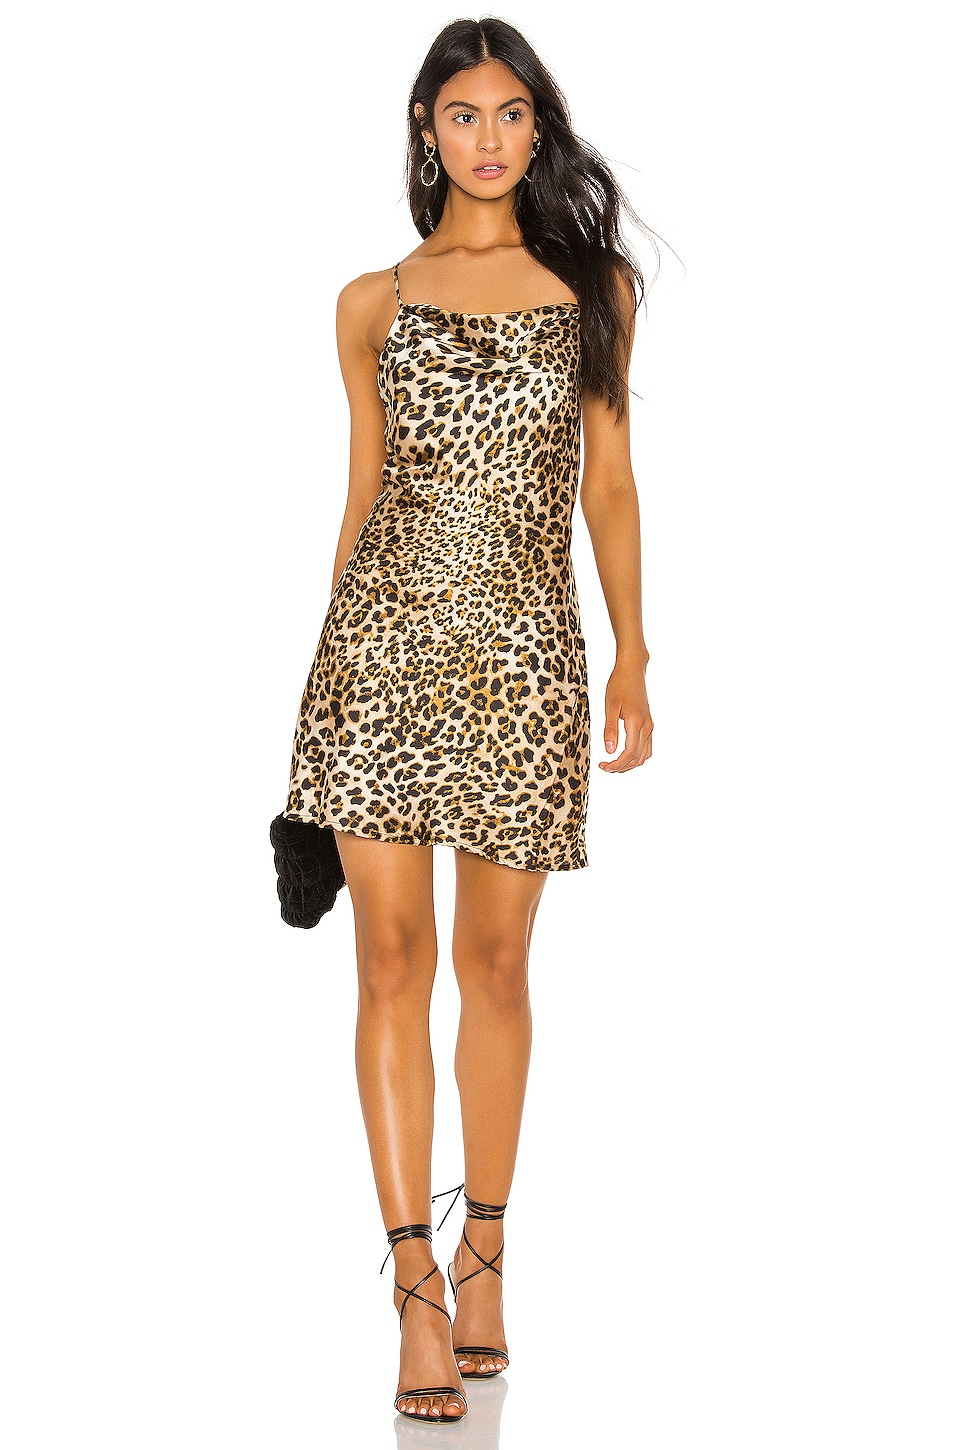 J.O.A. Cowl Neck Slip Dress in Leopard Print